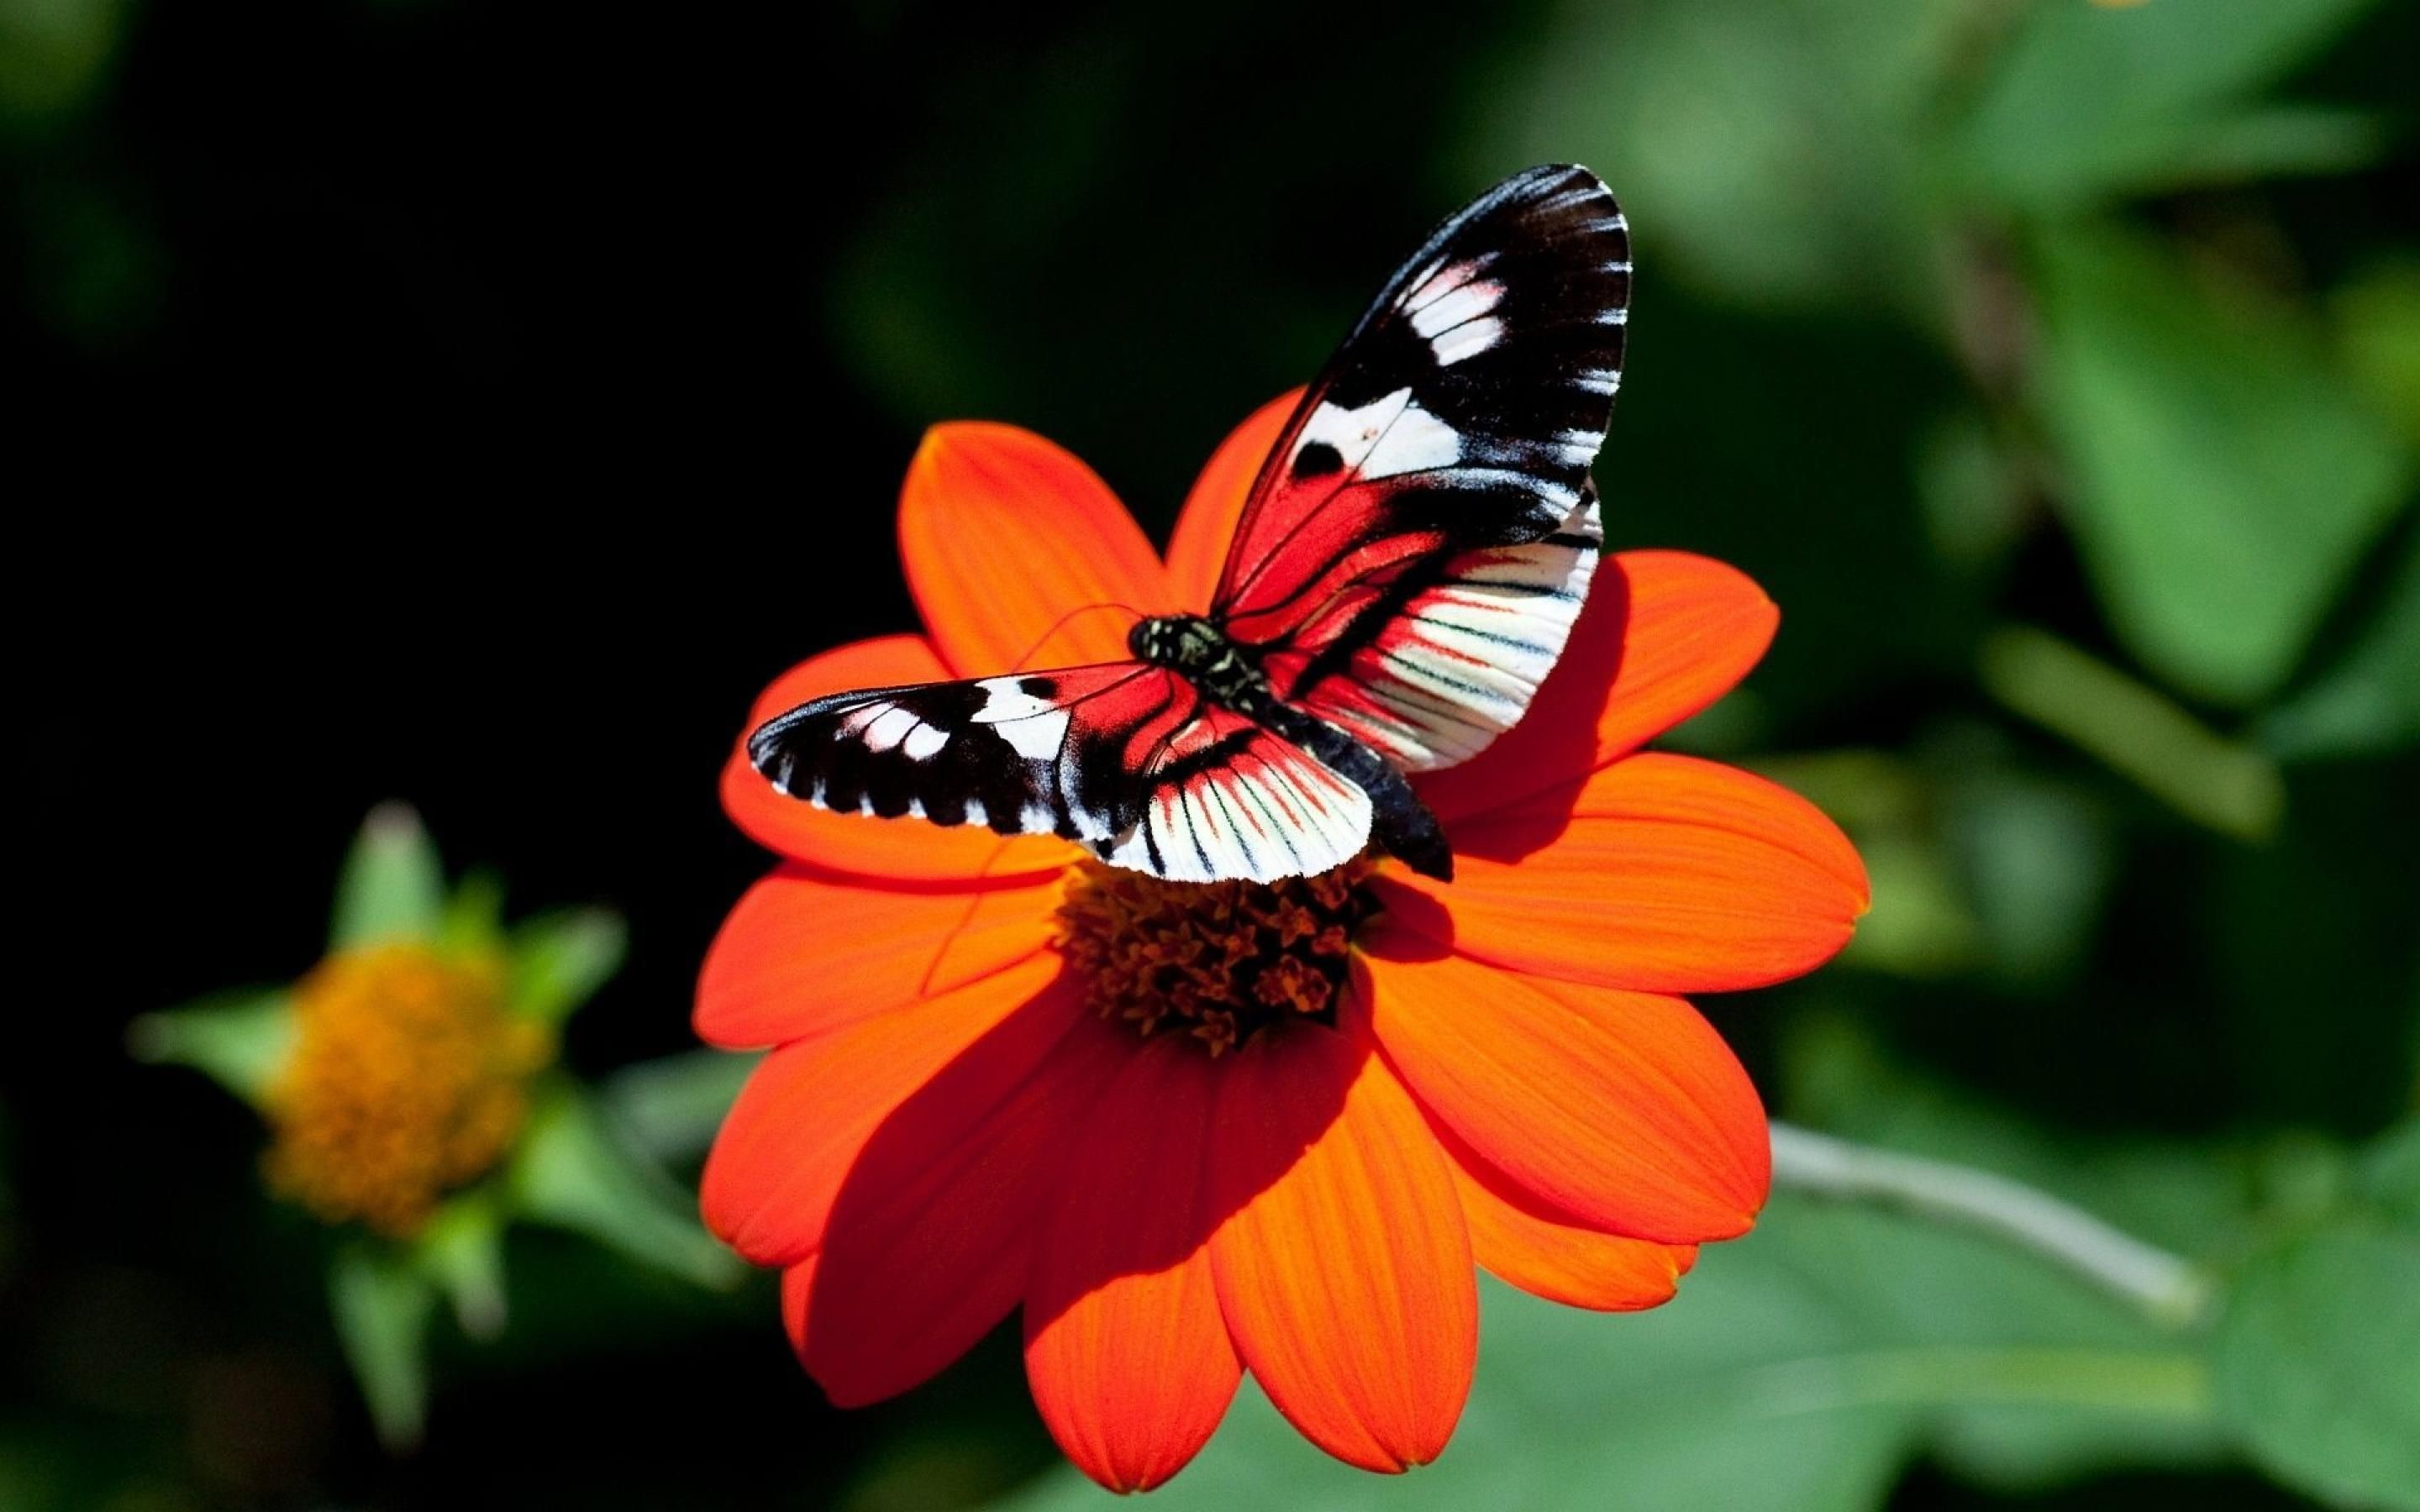 Res: 2880x1800, Red Flower With A Butterfly WallPaper HD - http://imashon.com/w/nature/red -flower-butterfly-wallpaper-hd.html